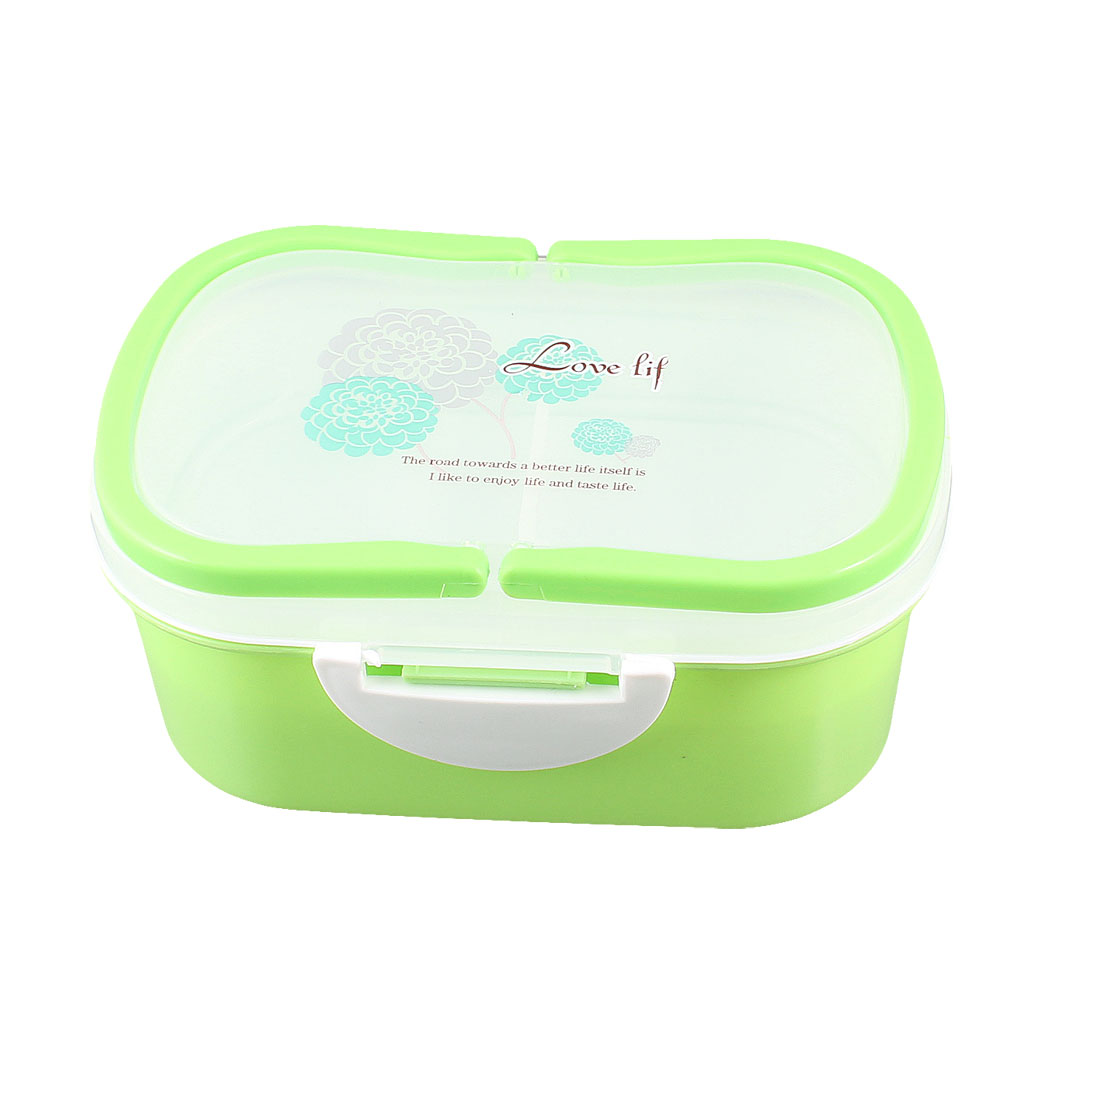 Camping Picnic Floral Print Green 2-tier Food Container Lunch Box Case